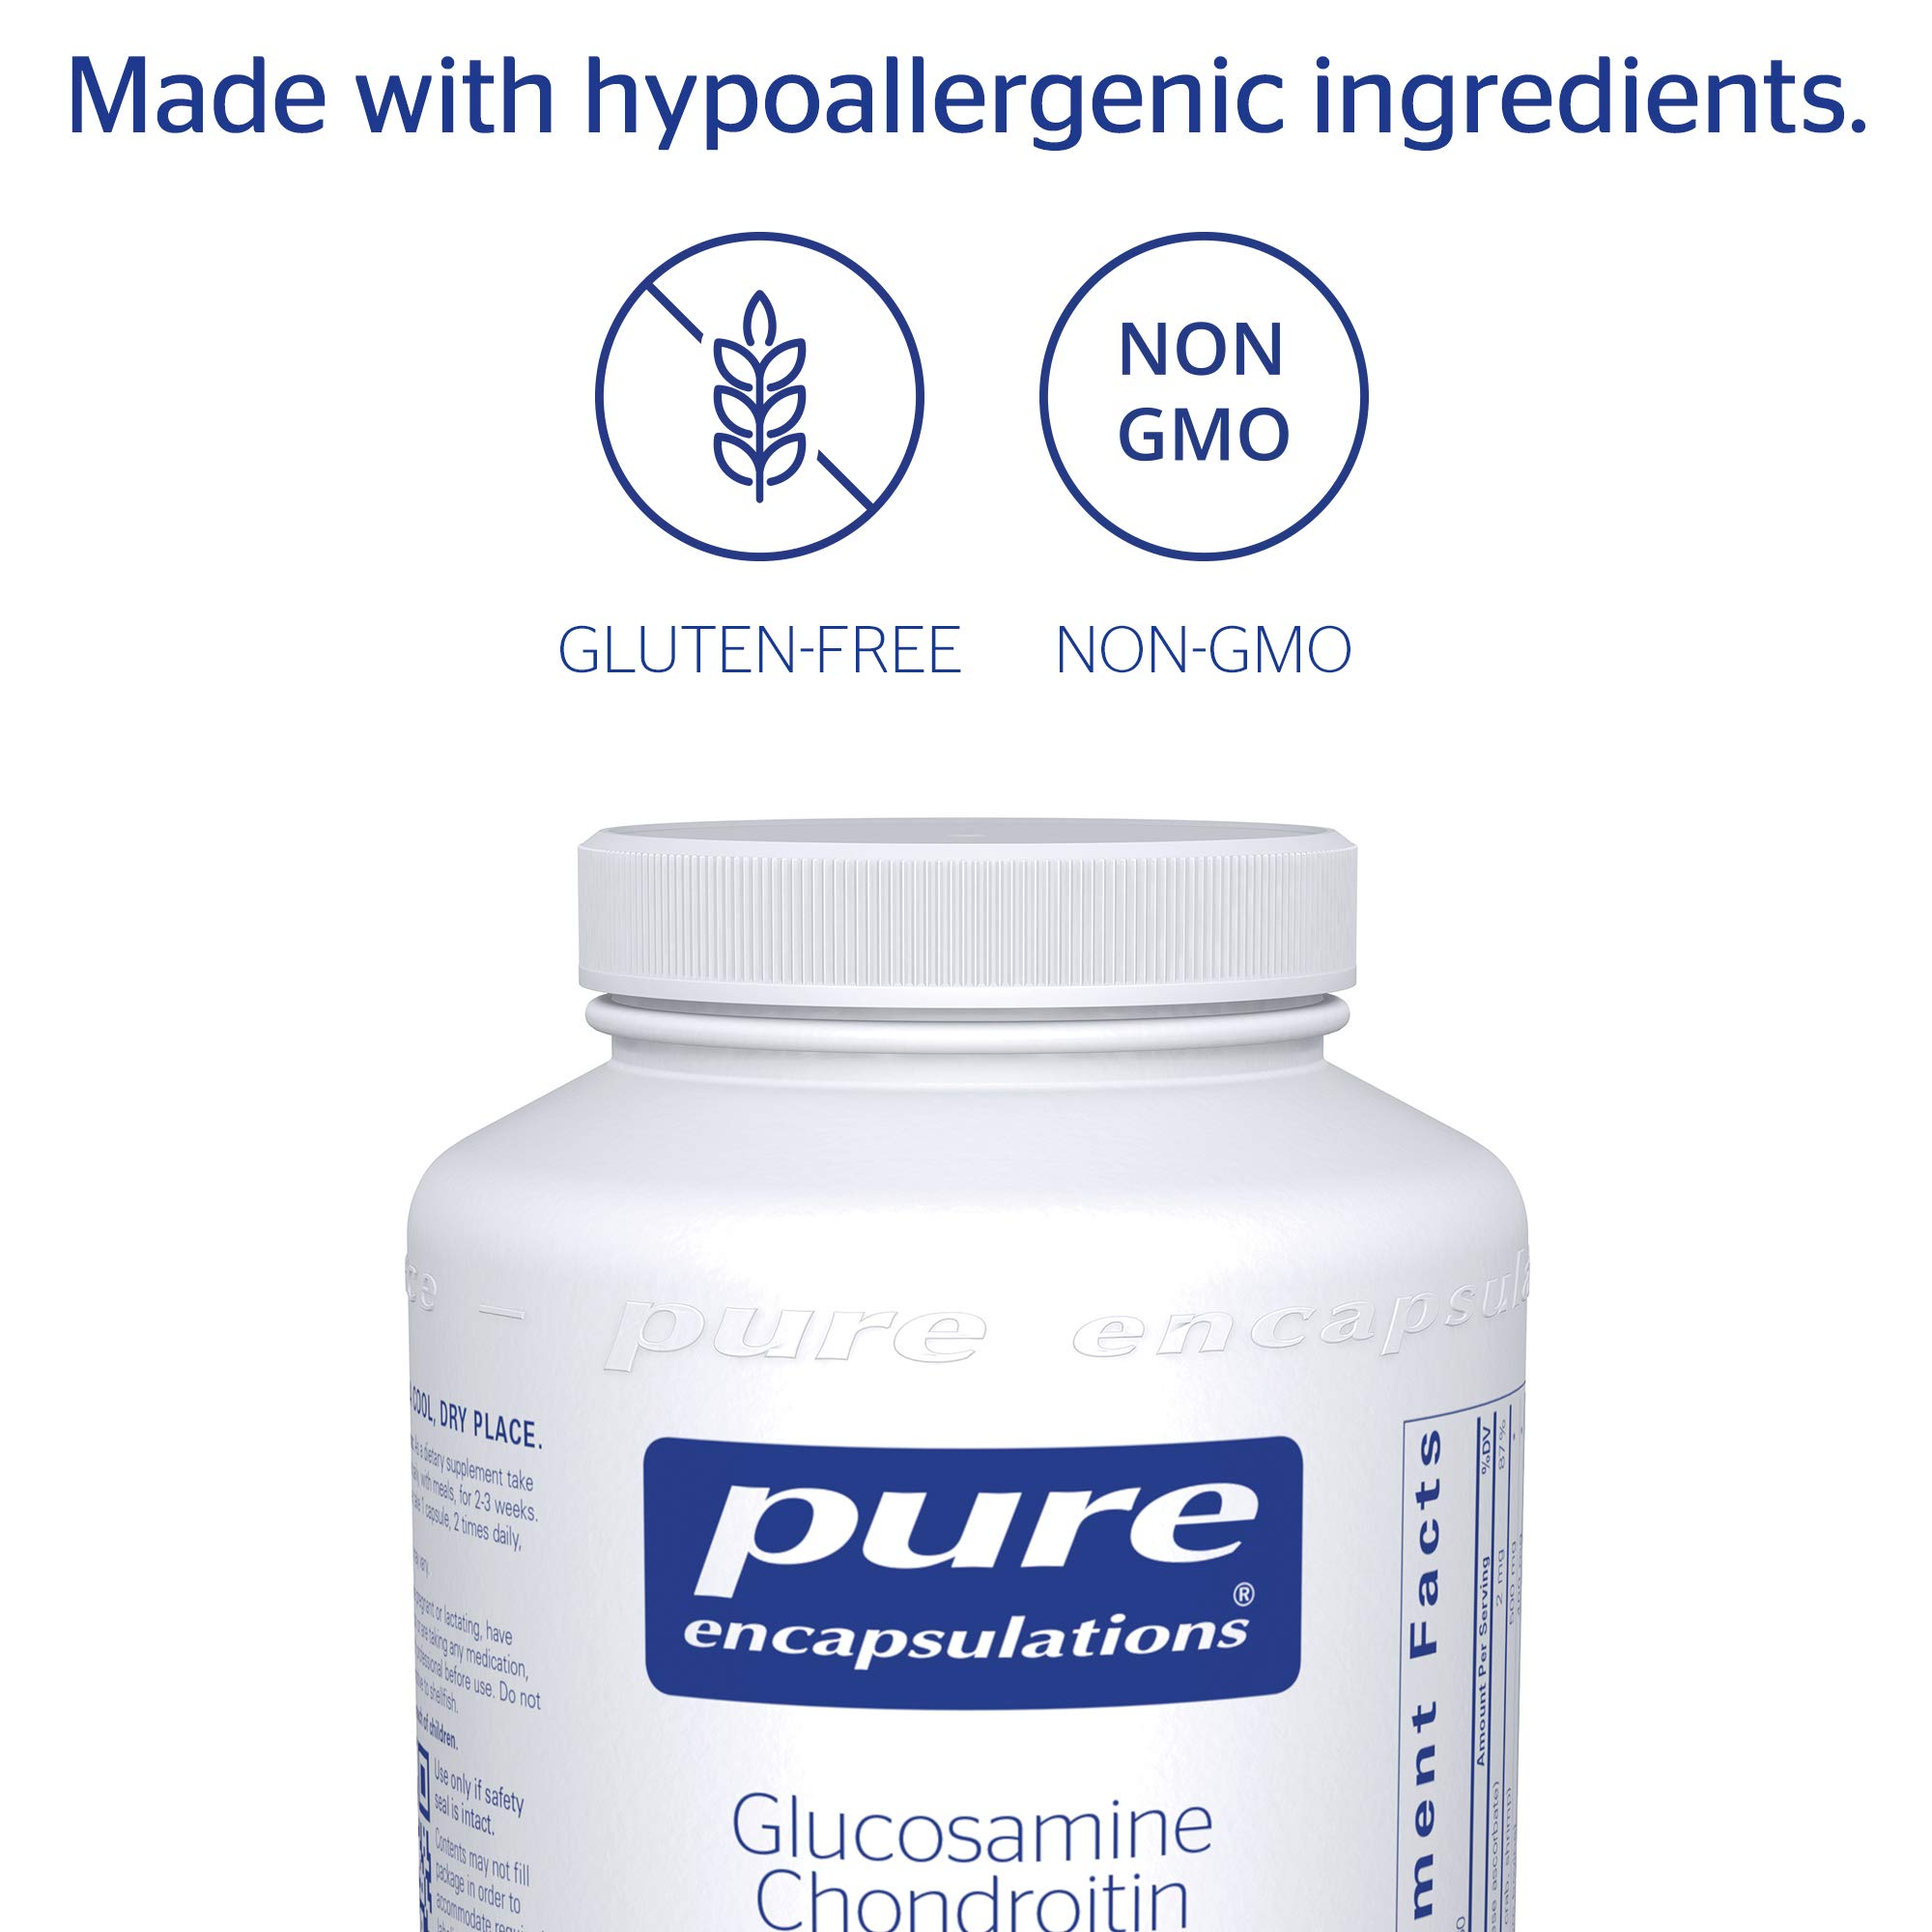 Pure Encapsulations - Glucosamine + Chondroitin with Manganese - Enhanced Cartilage Synthesis and Antioxidant Support* - 360 Capsules by Pure Encapsulations (Image #4)